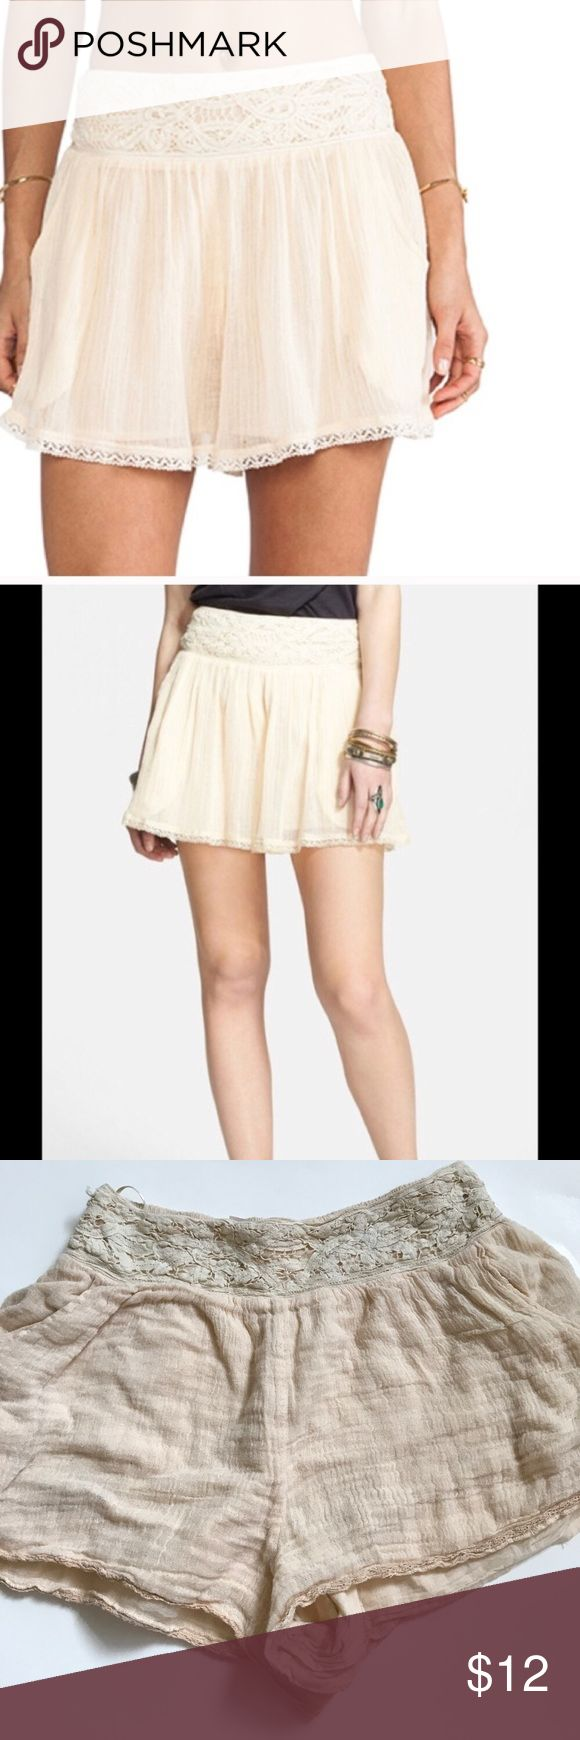 Free People cream lace shorts S Gently used condition no holes no stains. Fully lined. Elastic waist. Gauzy like fabric Free People Shorts